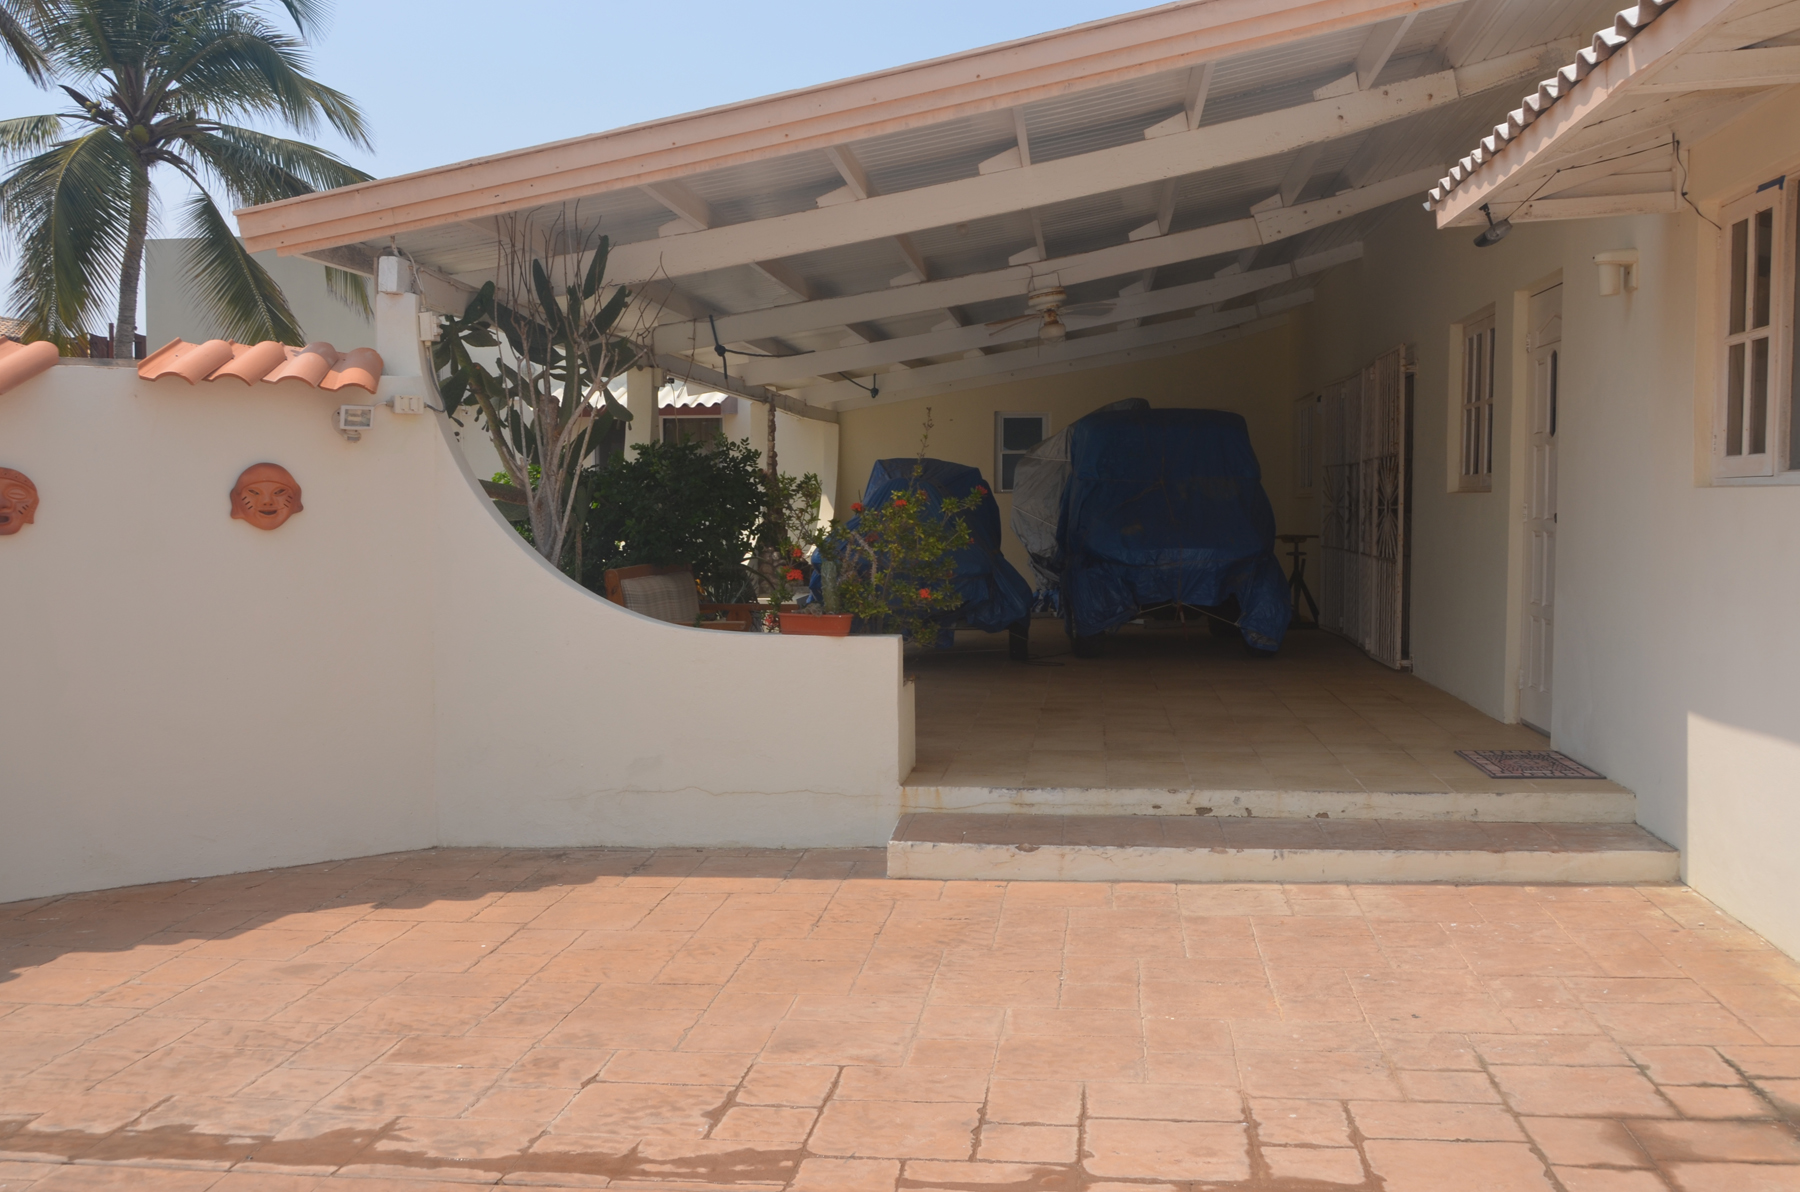 Additional photo for property listing at On level Villa infront of the Caribbean Ocean 阿鲁巴其他地方, 阿鲁巴岛上的城市 阿鲁巴岛